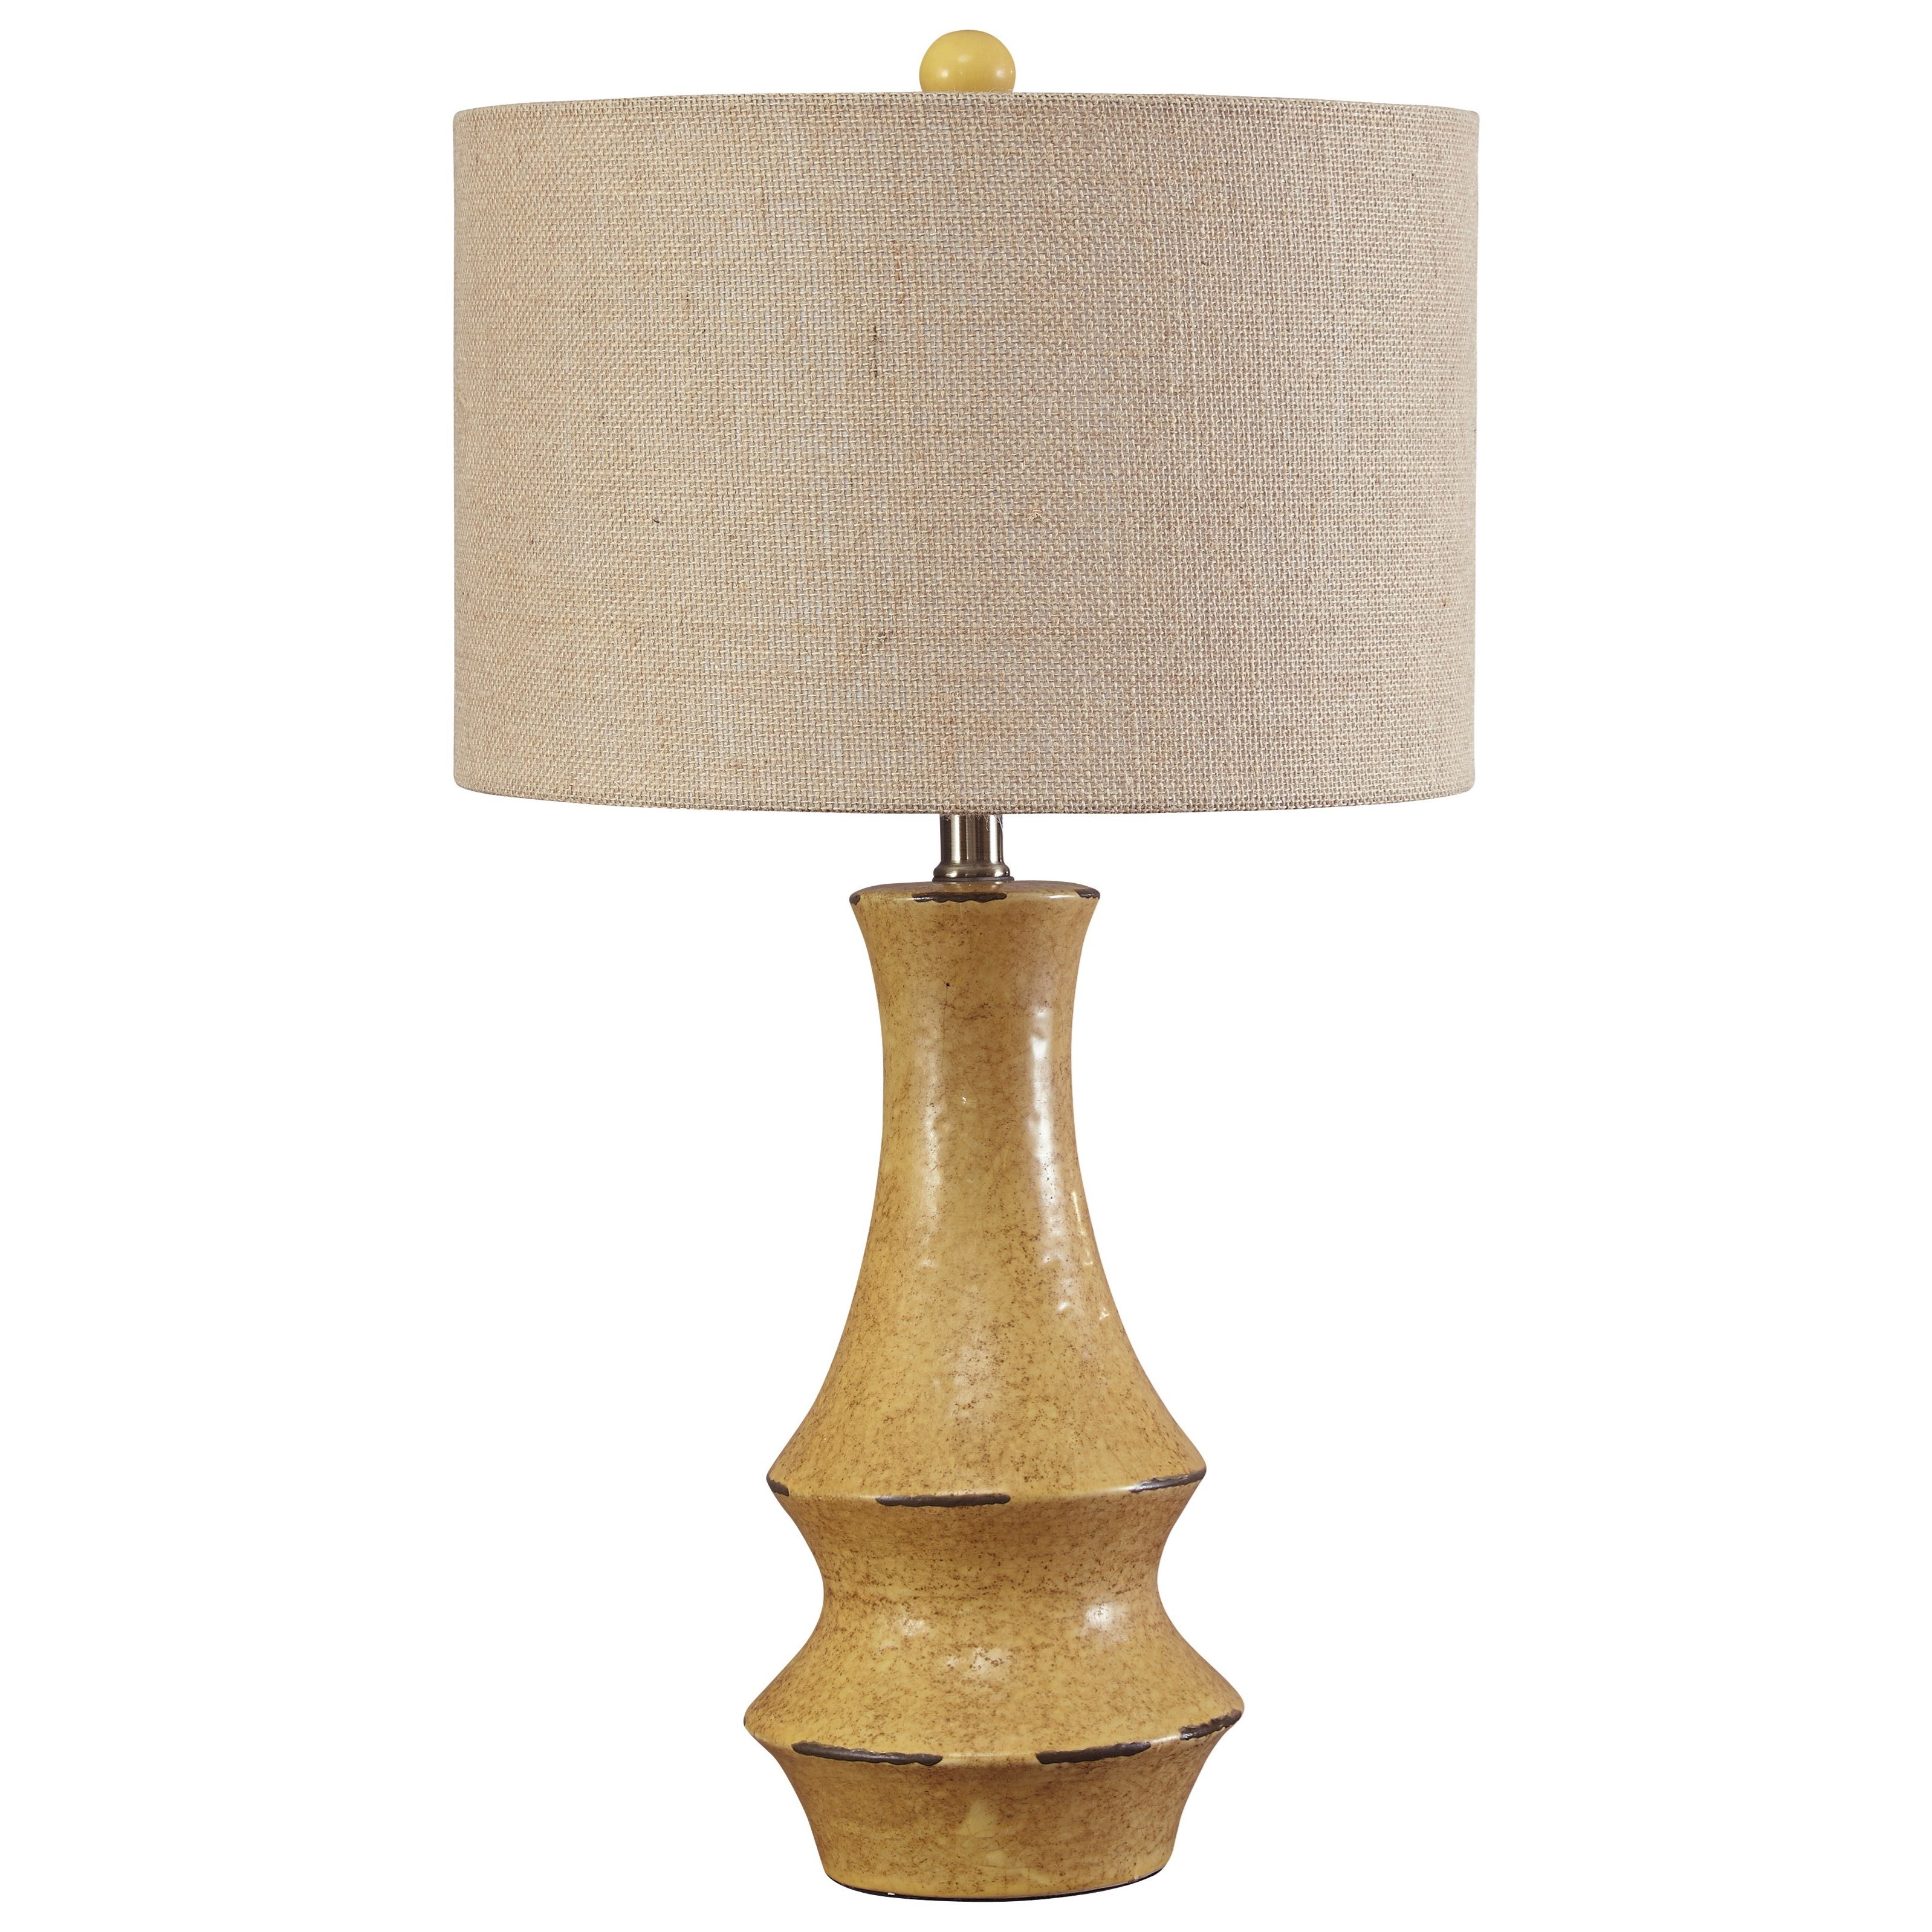 Signature Design By Ashley Lamps   Vintage Style Jenci Antique Yellow Table  Lamp   Item Number